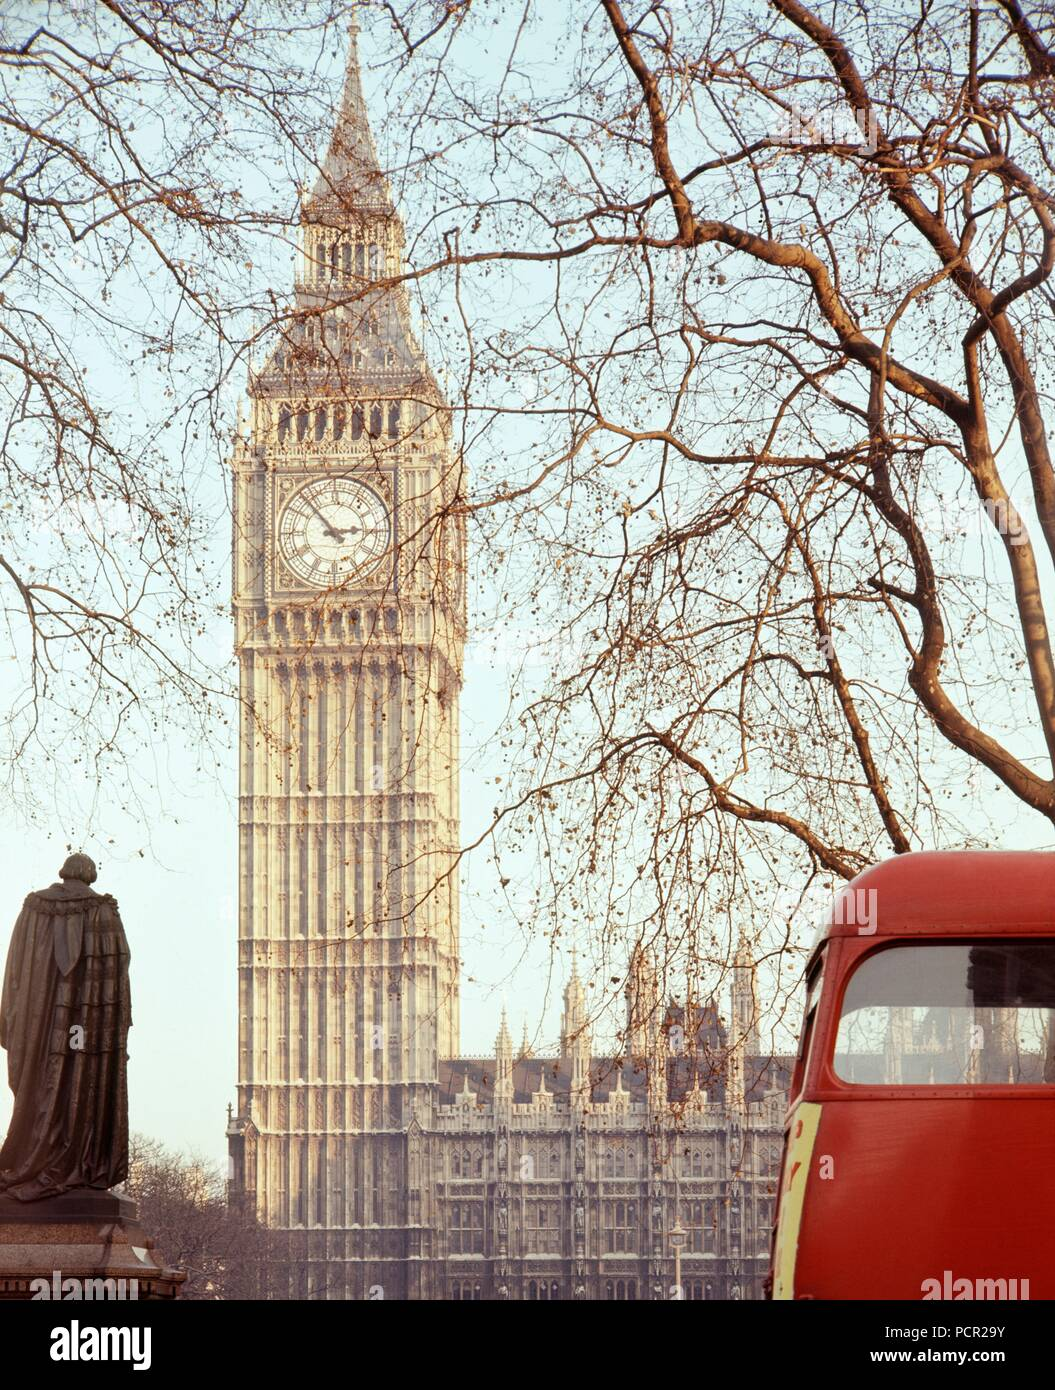 Palace of Westminster, London, c1945-c1980. The clock tower of the Houses of Parliament viewed from Parliament Square. The huge bell housed in the clock tower and known as Big Ben came into operation in 1859. A red London bus is passing. Stock Photo